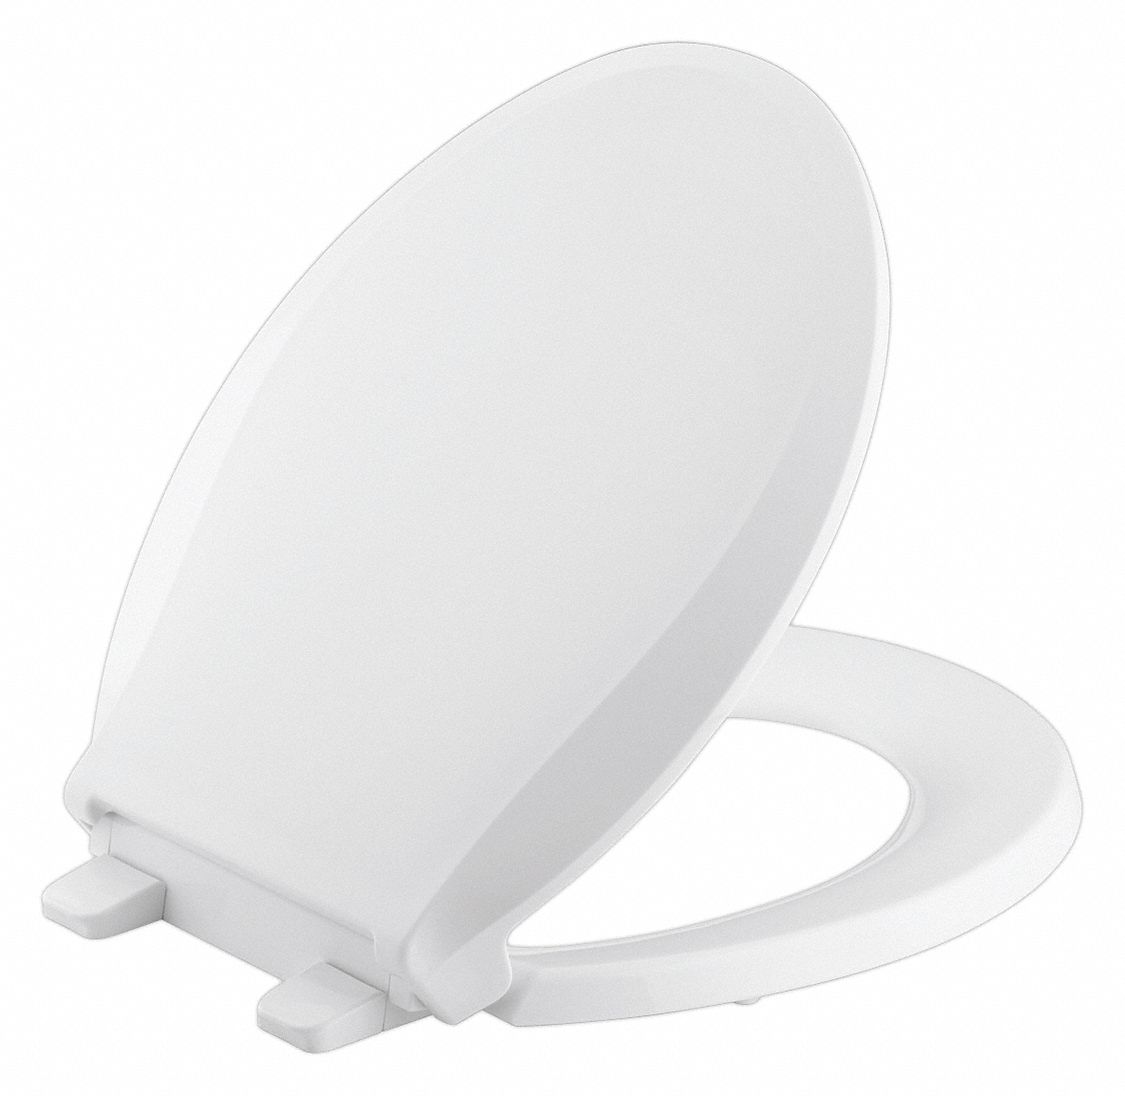 Kohler Toilet Seat Round With Cover 16 1 4 Quot Bolt To